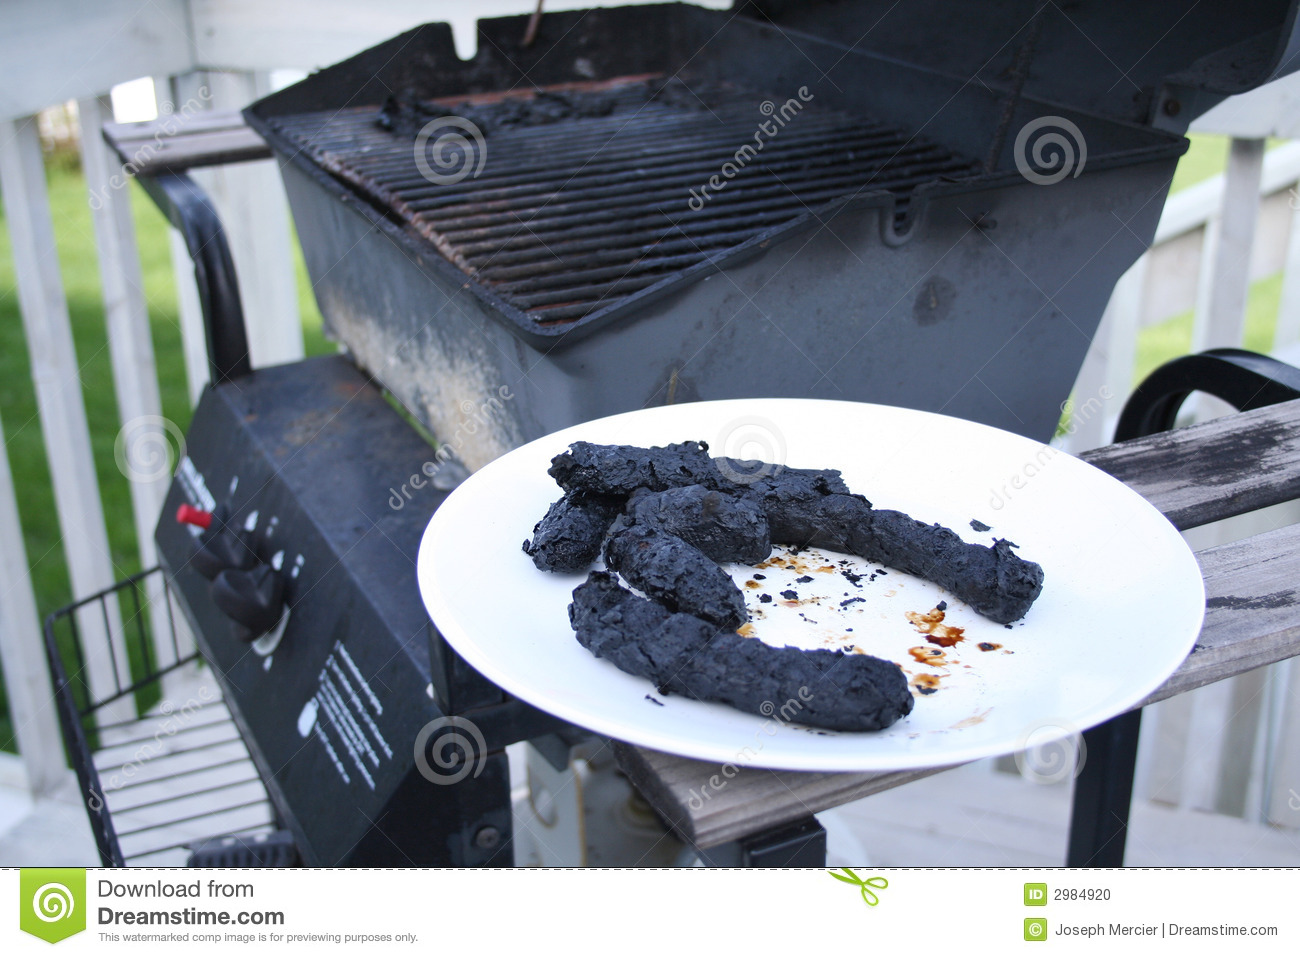 A barbecue gone wrong 7